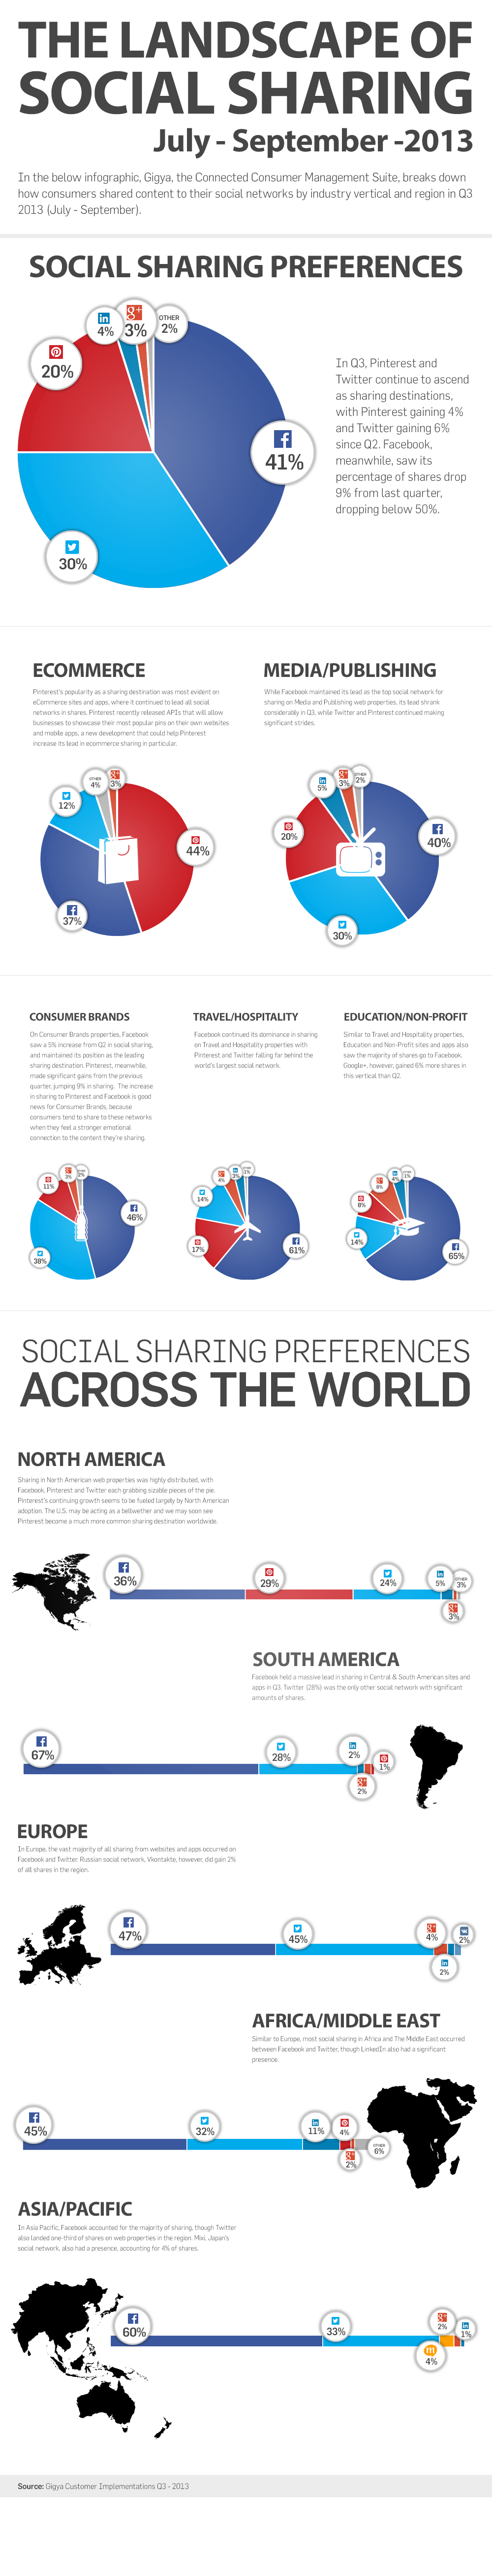 Social Sharing Infographic Q3 2013